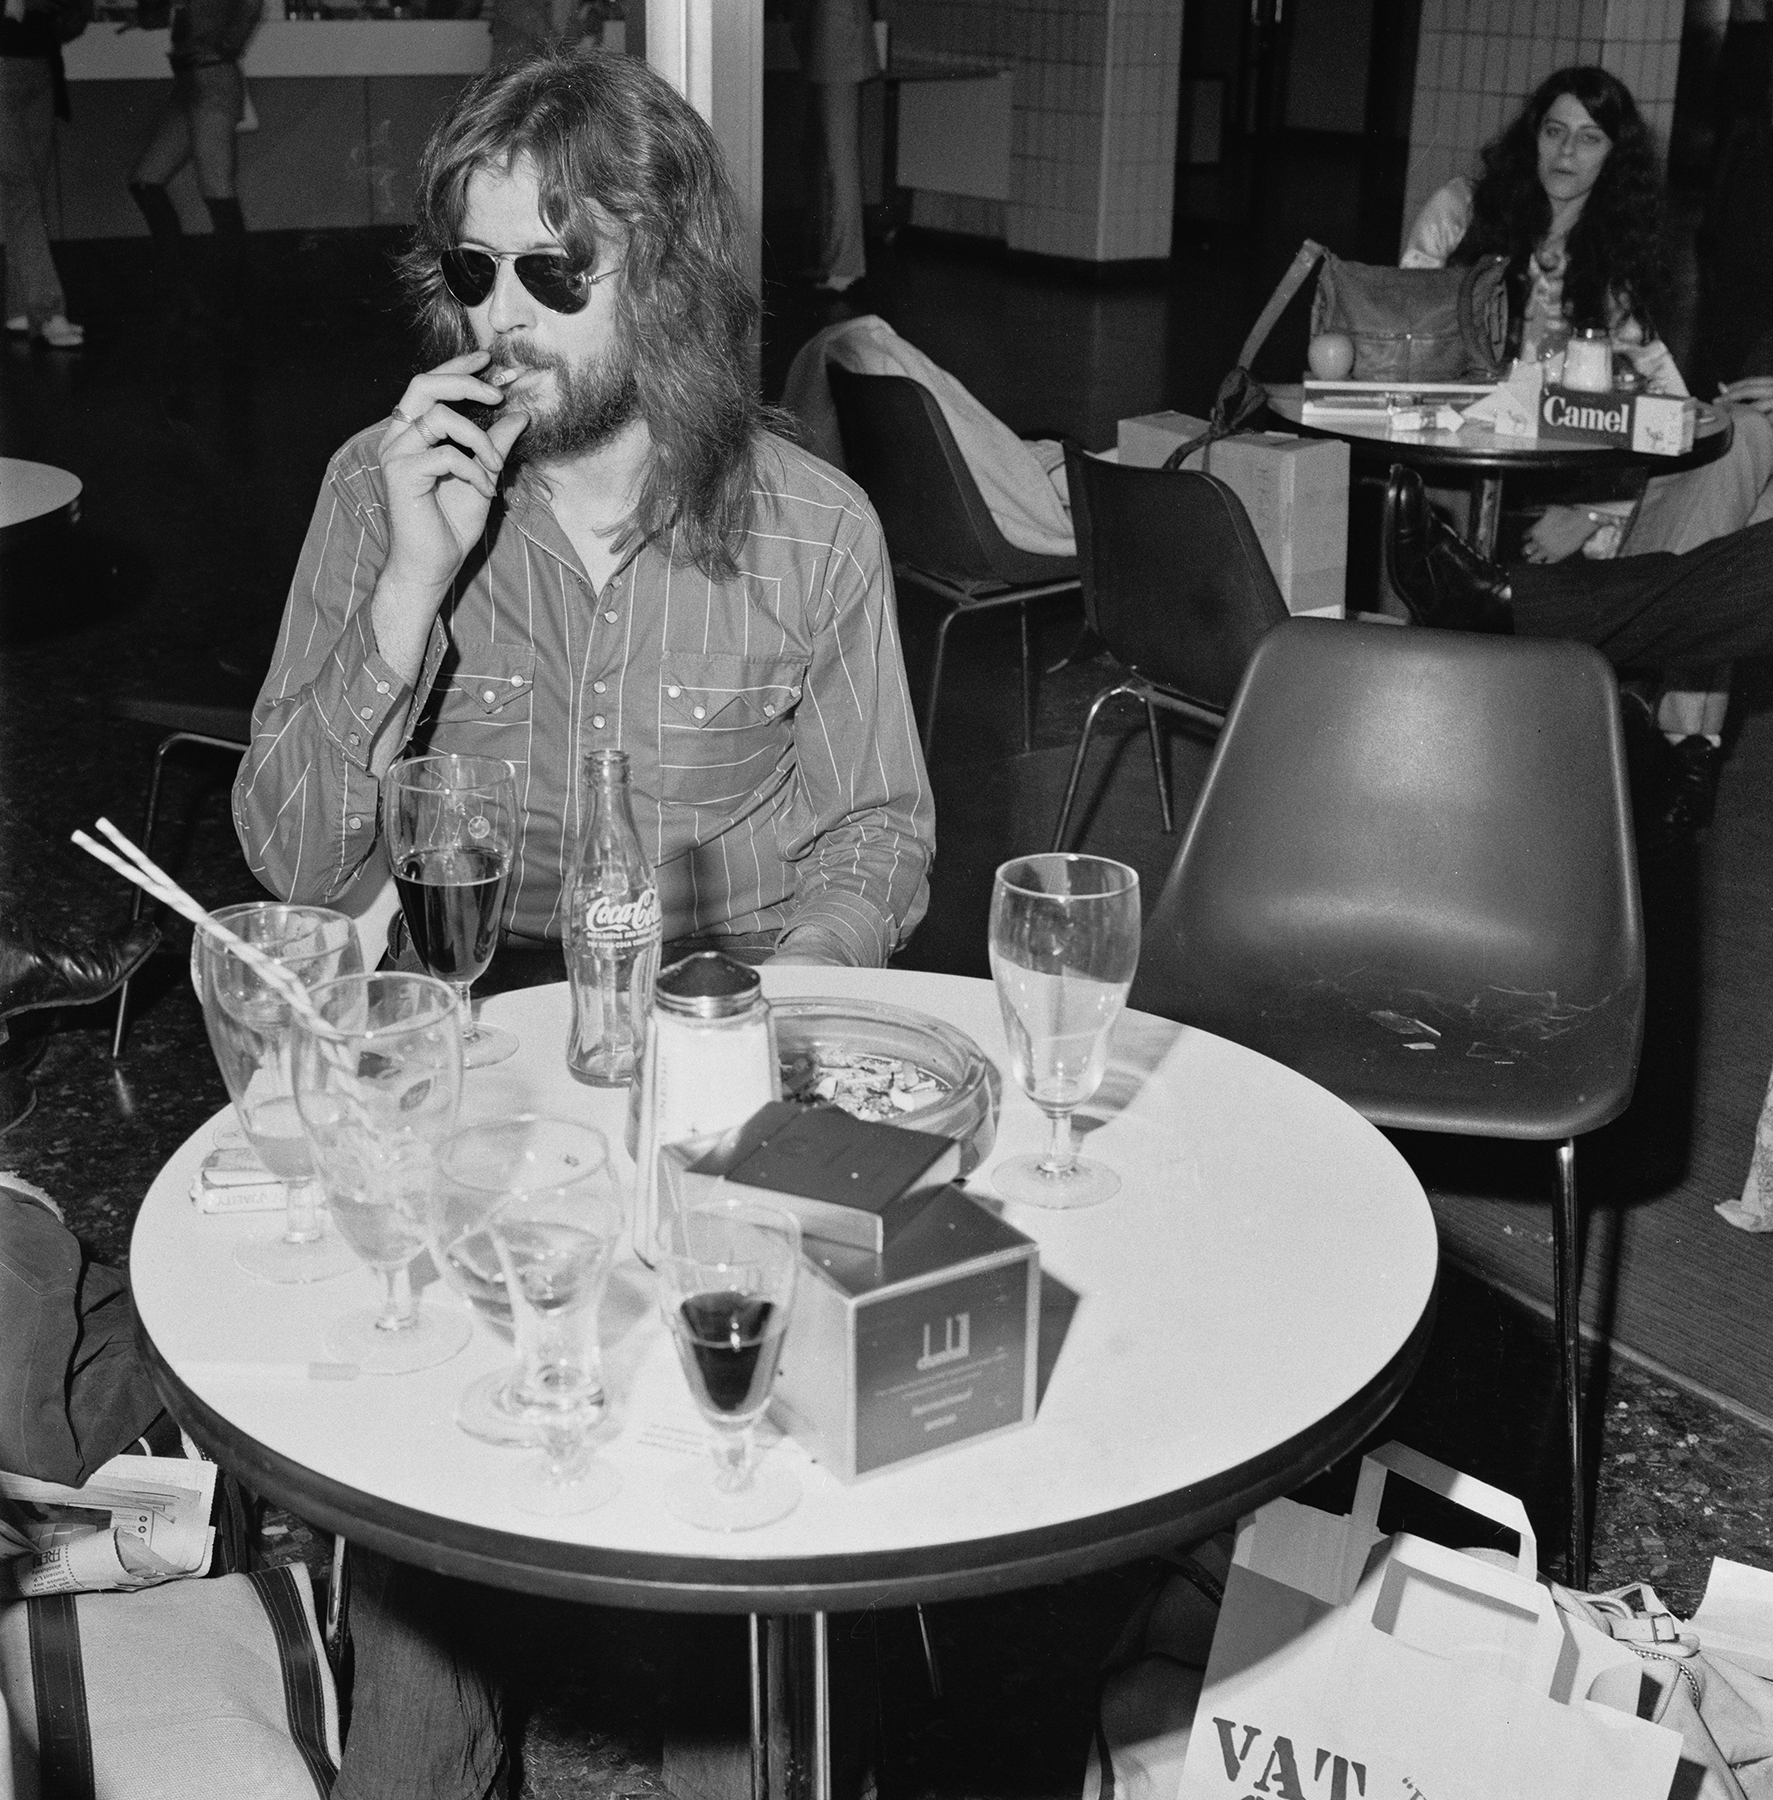 English musician, guitarist and singer Eric Clapton smokes a cigarette with a drink in an airport cafeteria in May 1971. Eric Clapton is preparing to fly to France to attend the wedding of Mick Jagger and Bianca Perez-Mora Macias. (Photo by Evening Standard/Hulton Archive/Getty Images)